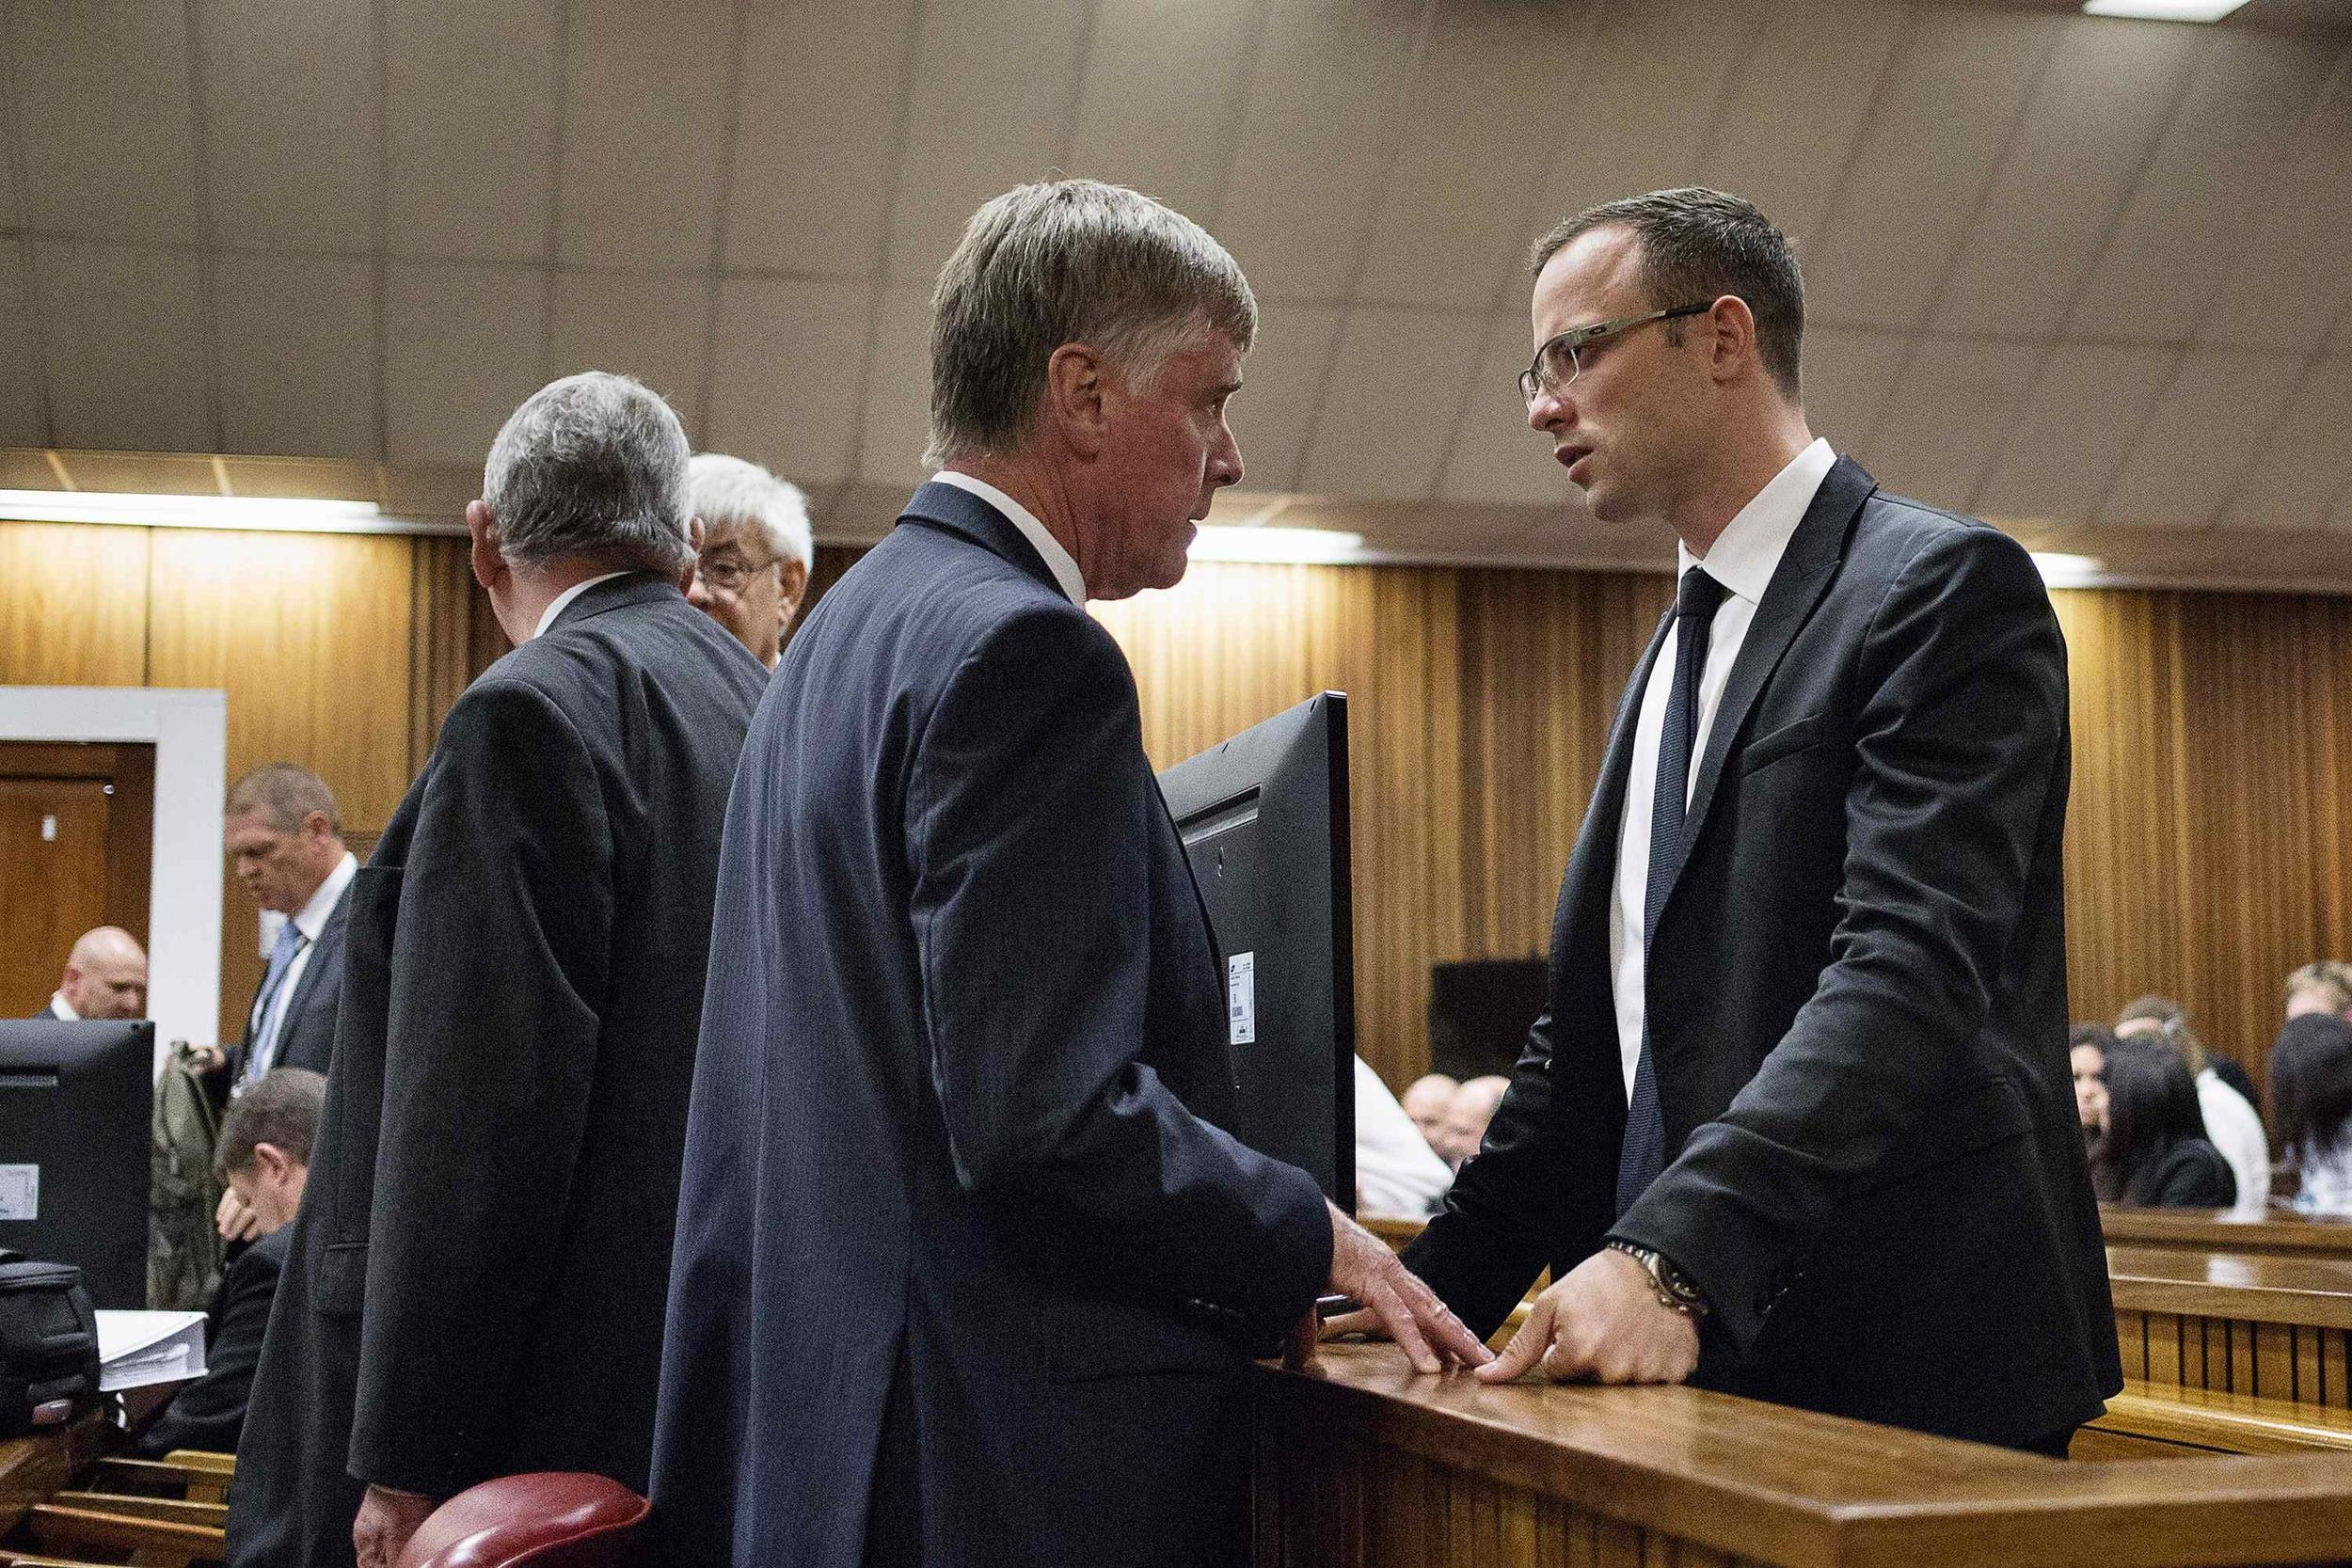 Image: Oscar Pistorius and defense lawyers on Friday